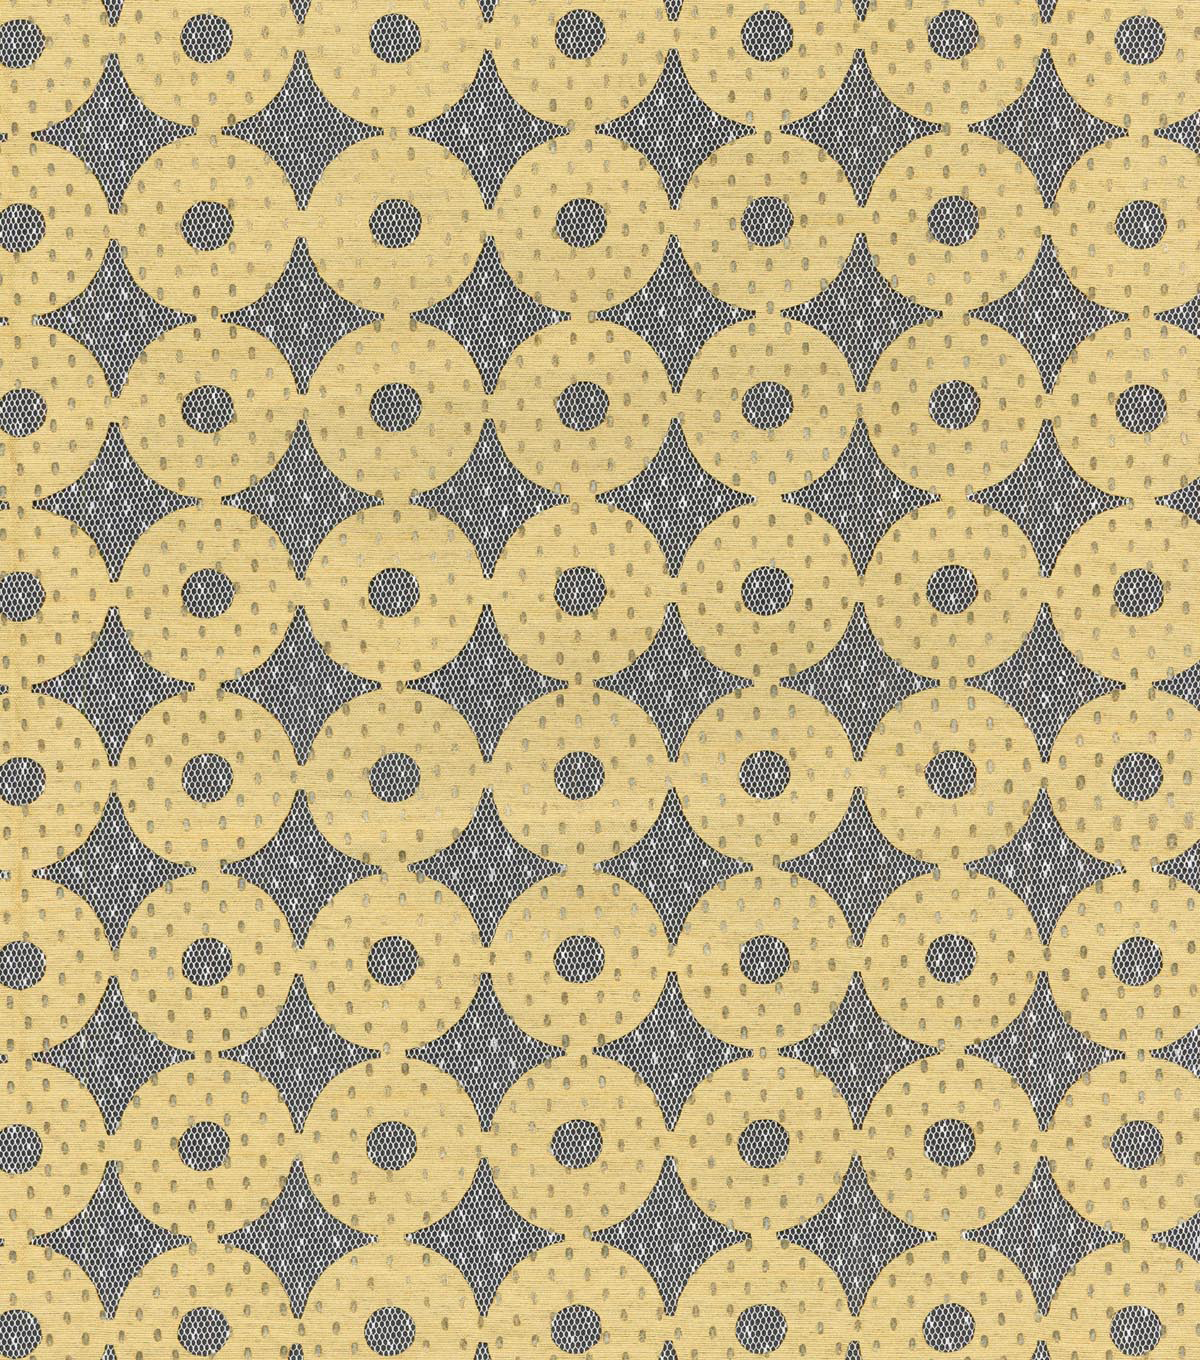 Home Decor 8\u0022x8\u0022 Swatch Fabric-IMAN Home Sayan Circles Ore